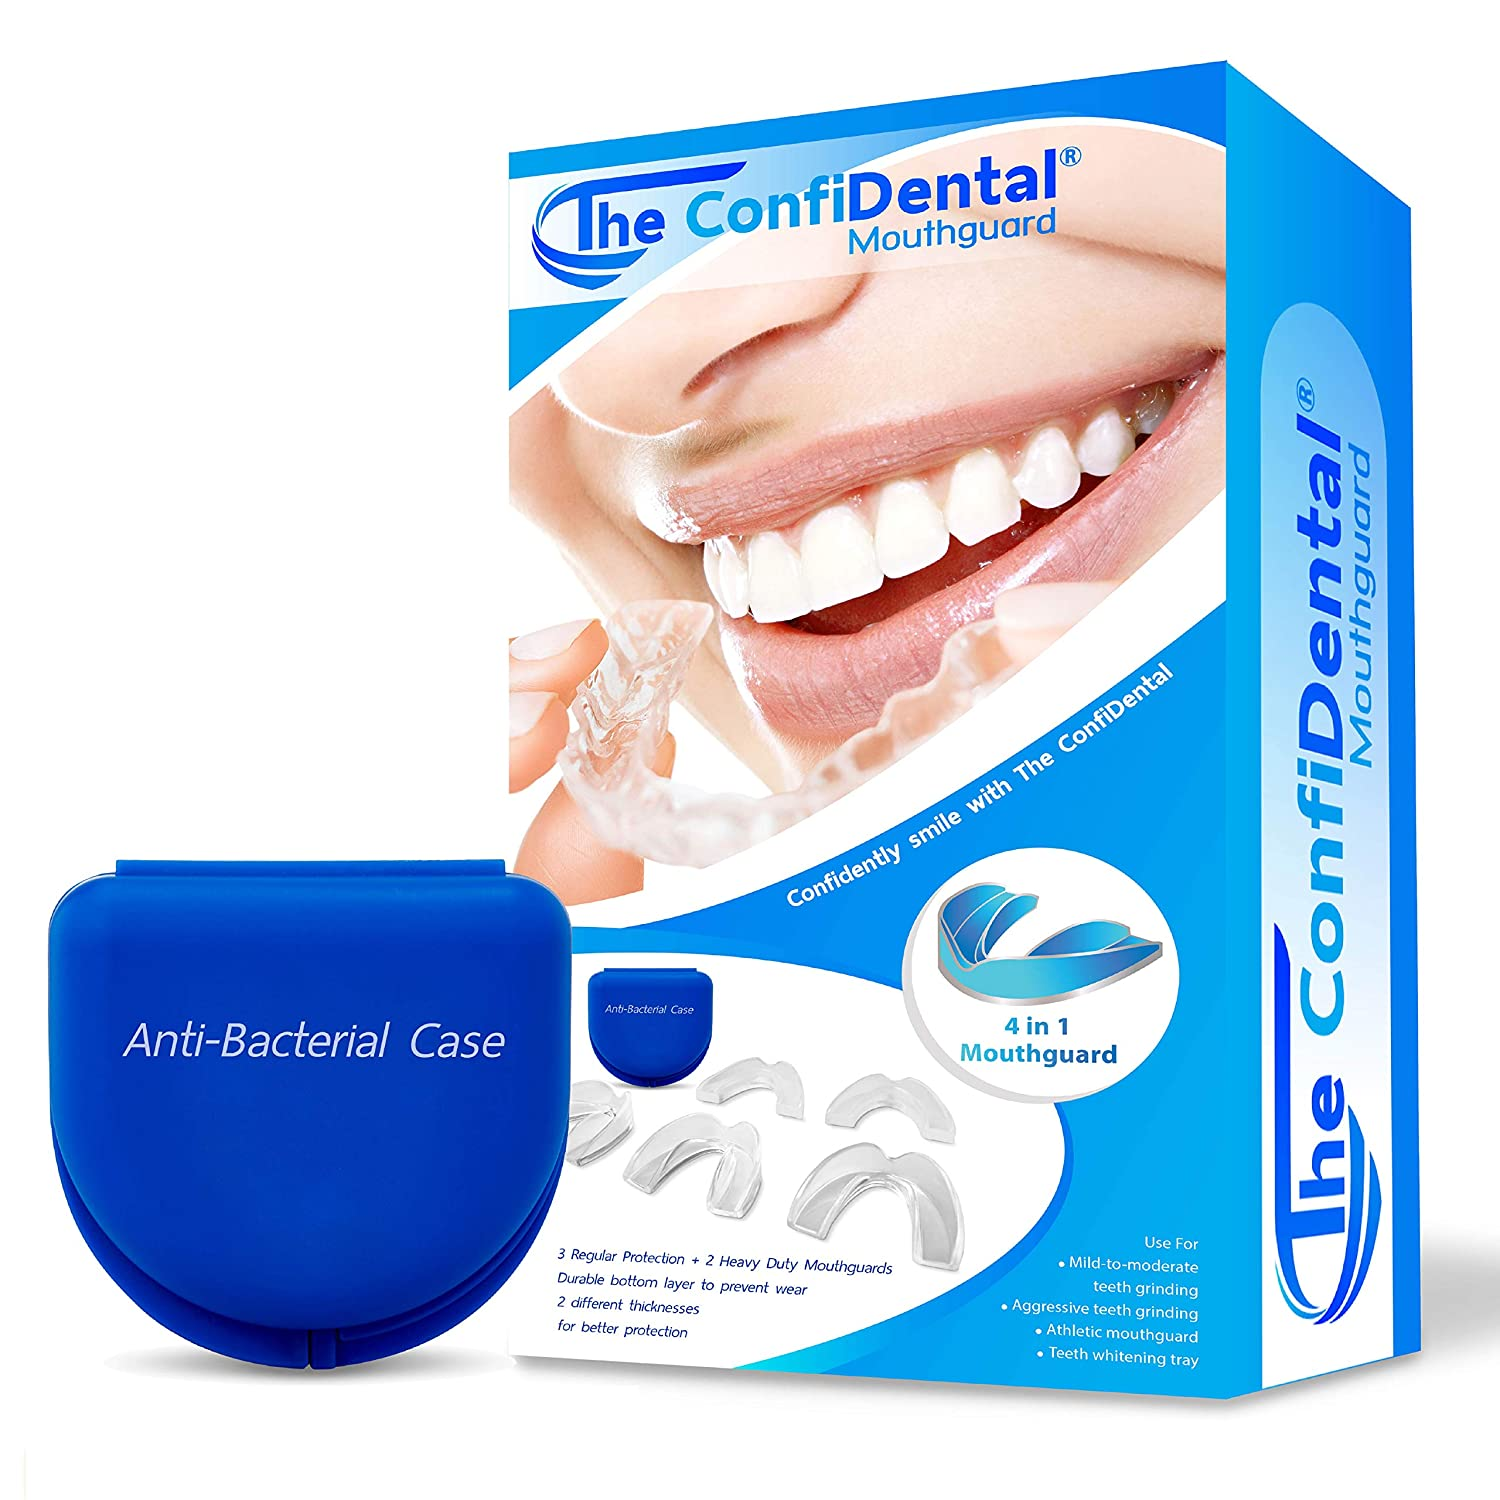 The ConfiDental - Pack of 5 Moldable Mouth Guard for Teeth Grinding Clenching Bruxism, Sport Athletic, Whitening Tray